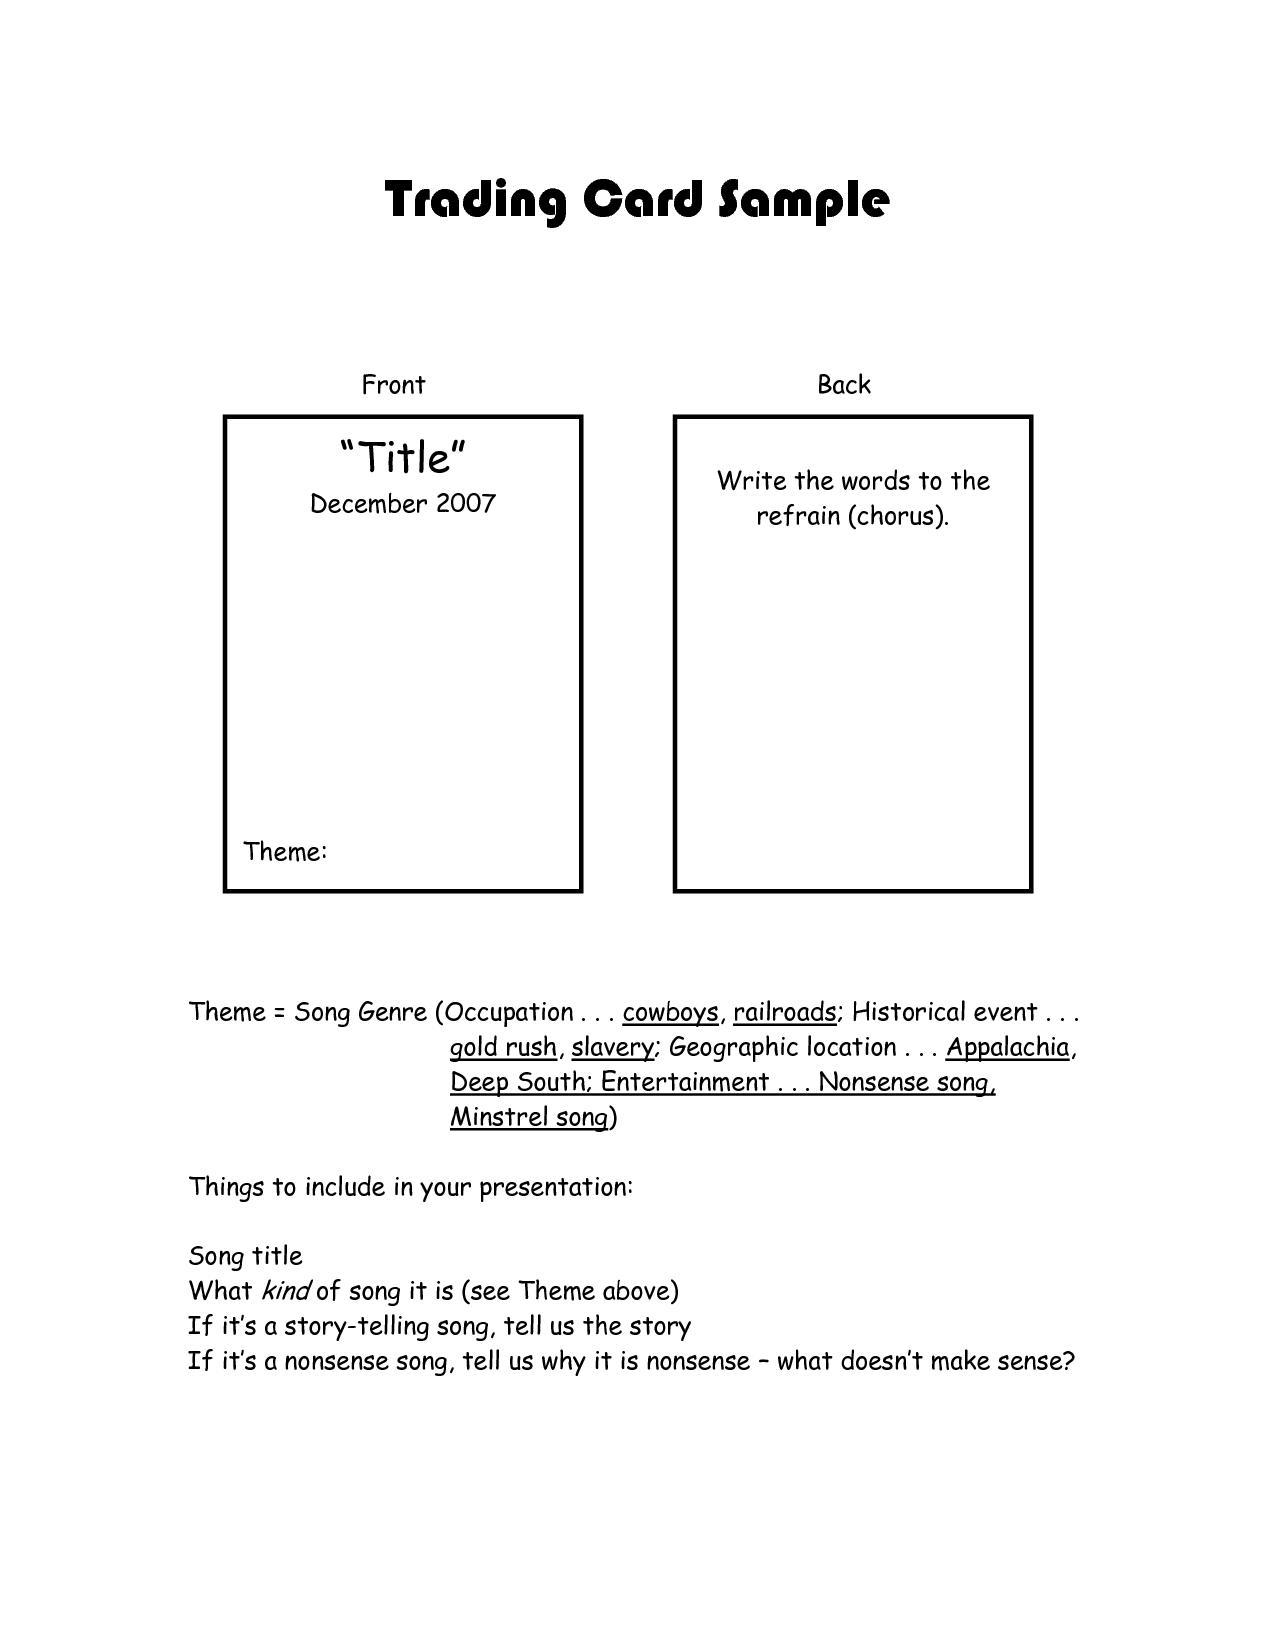 Best Photos Of Trading Card Template For Word - Trading Card intended for Superhero Trading Card Template